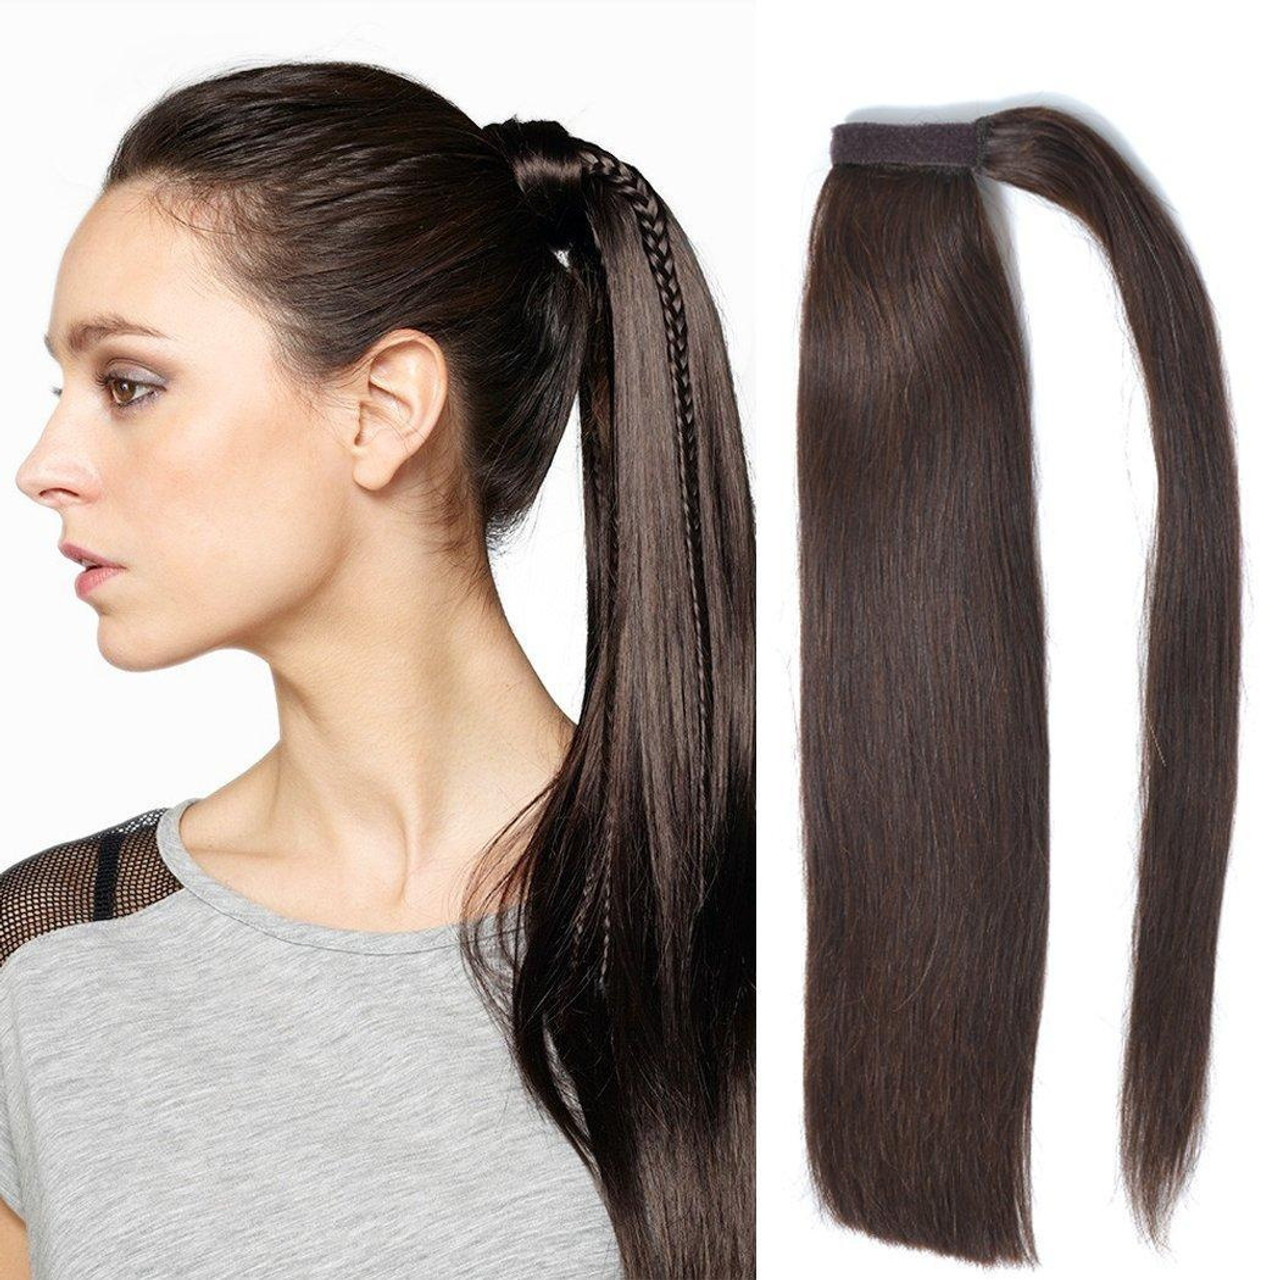 Remeehi 100% Real Human Hair Straight Wrap Around Ponytail Extension for  Woman 85g 15